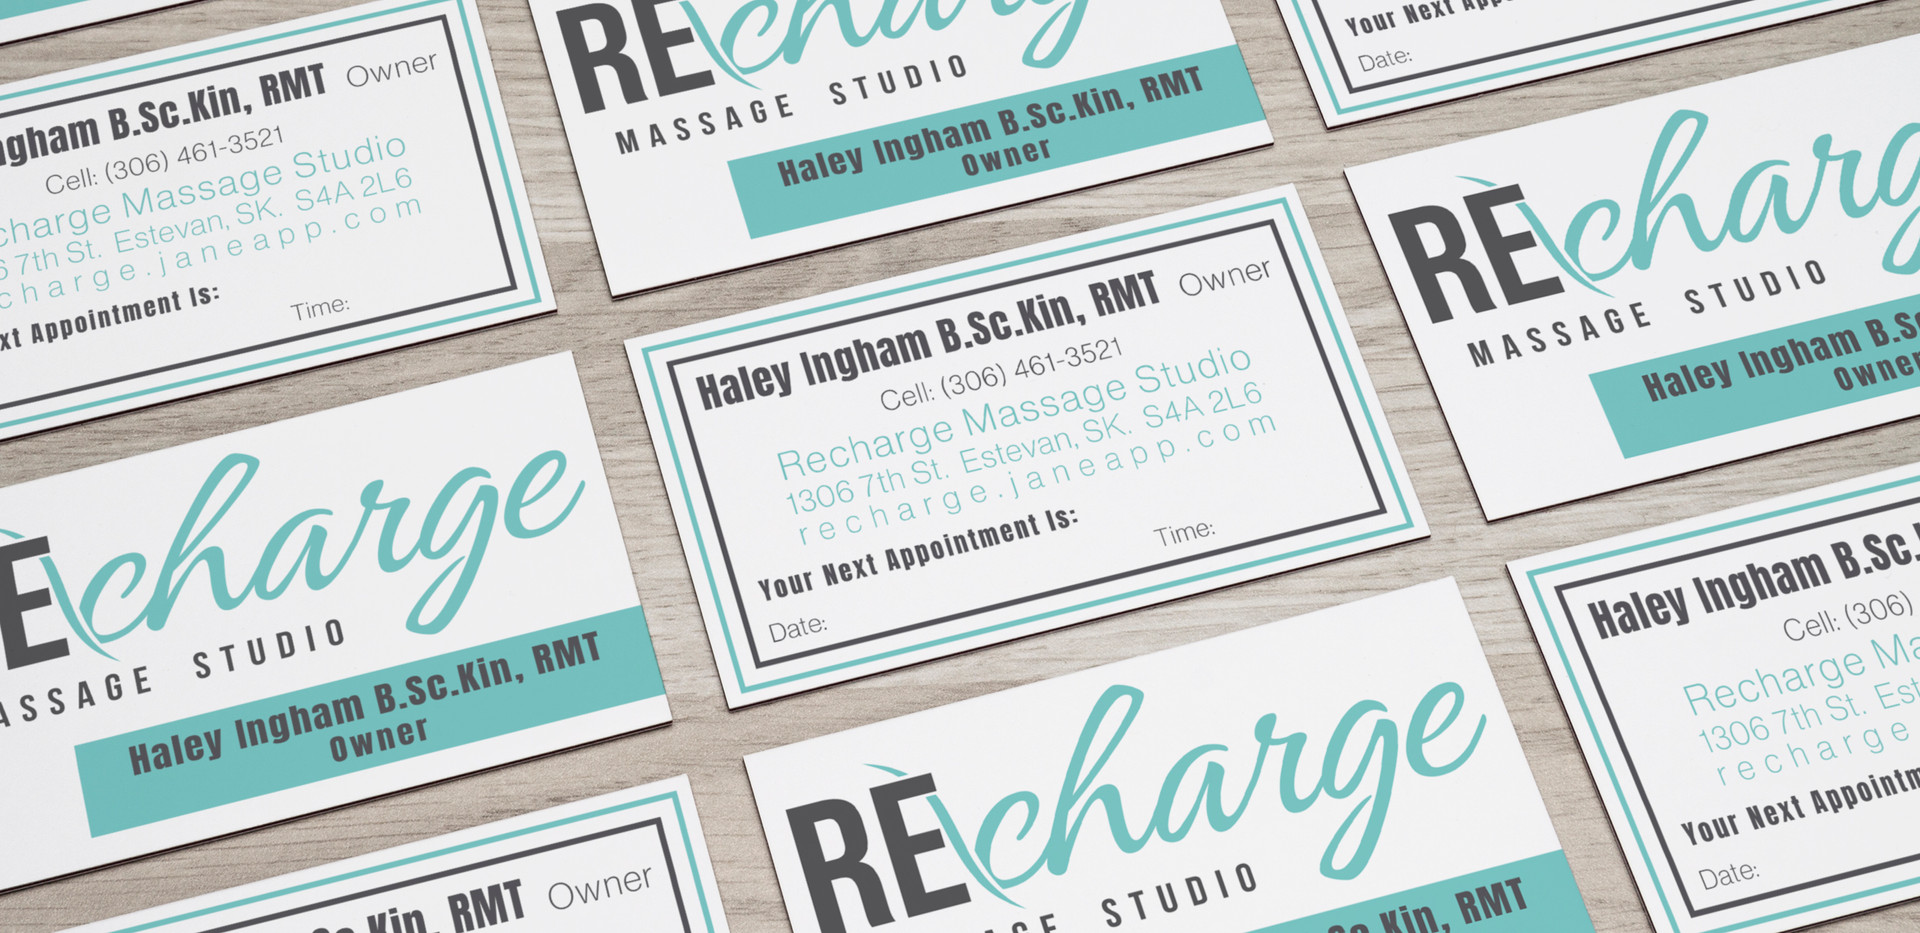 Recharge Massage Studio Business Cards